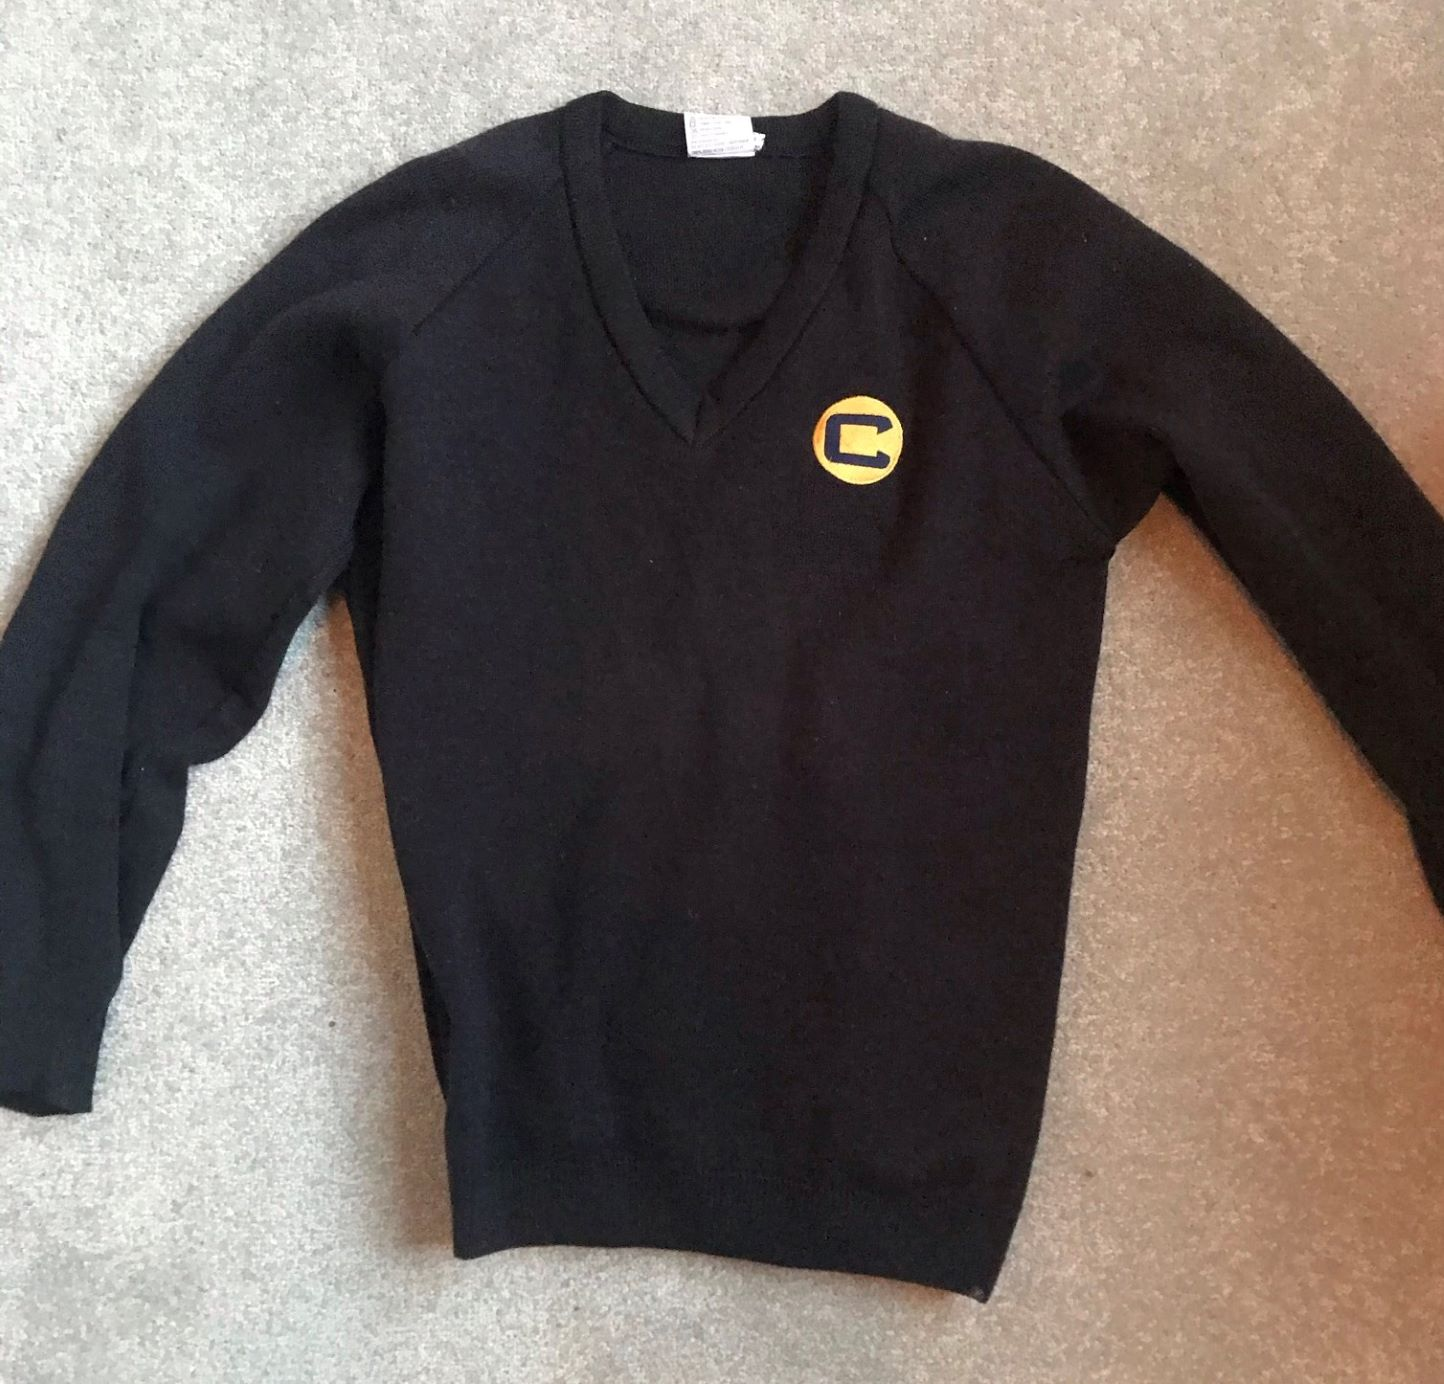 Charter North Jumper: Size 32